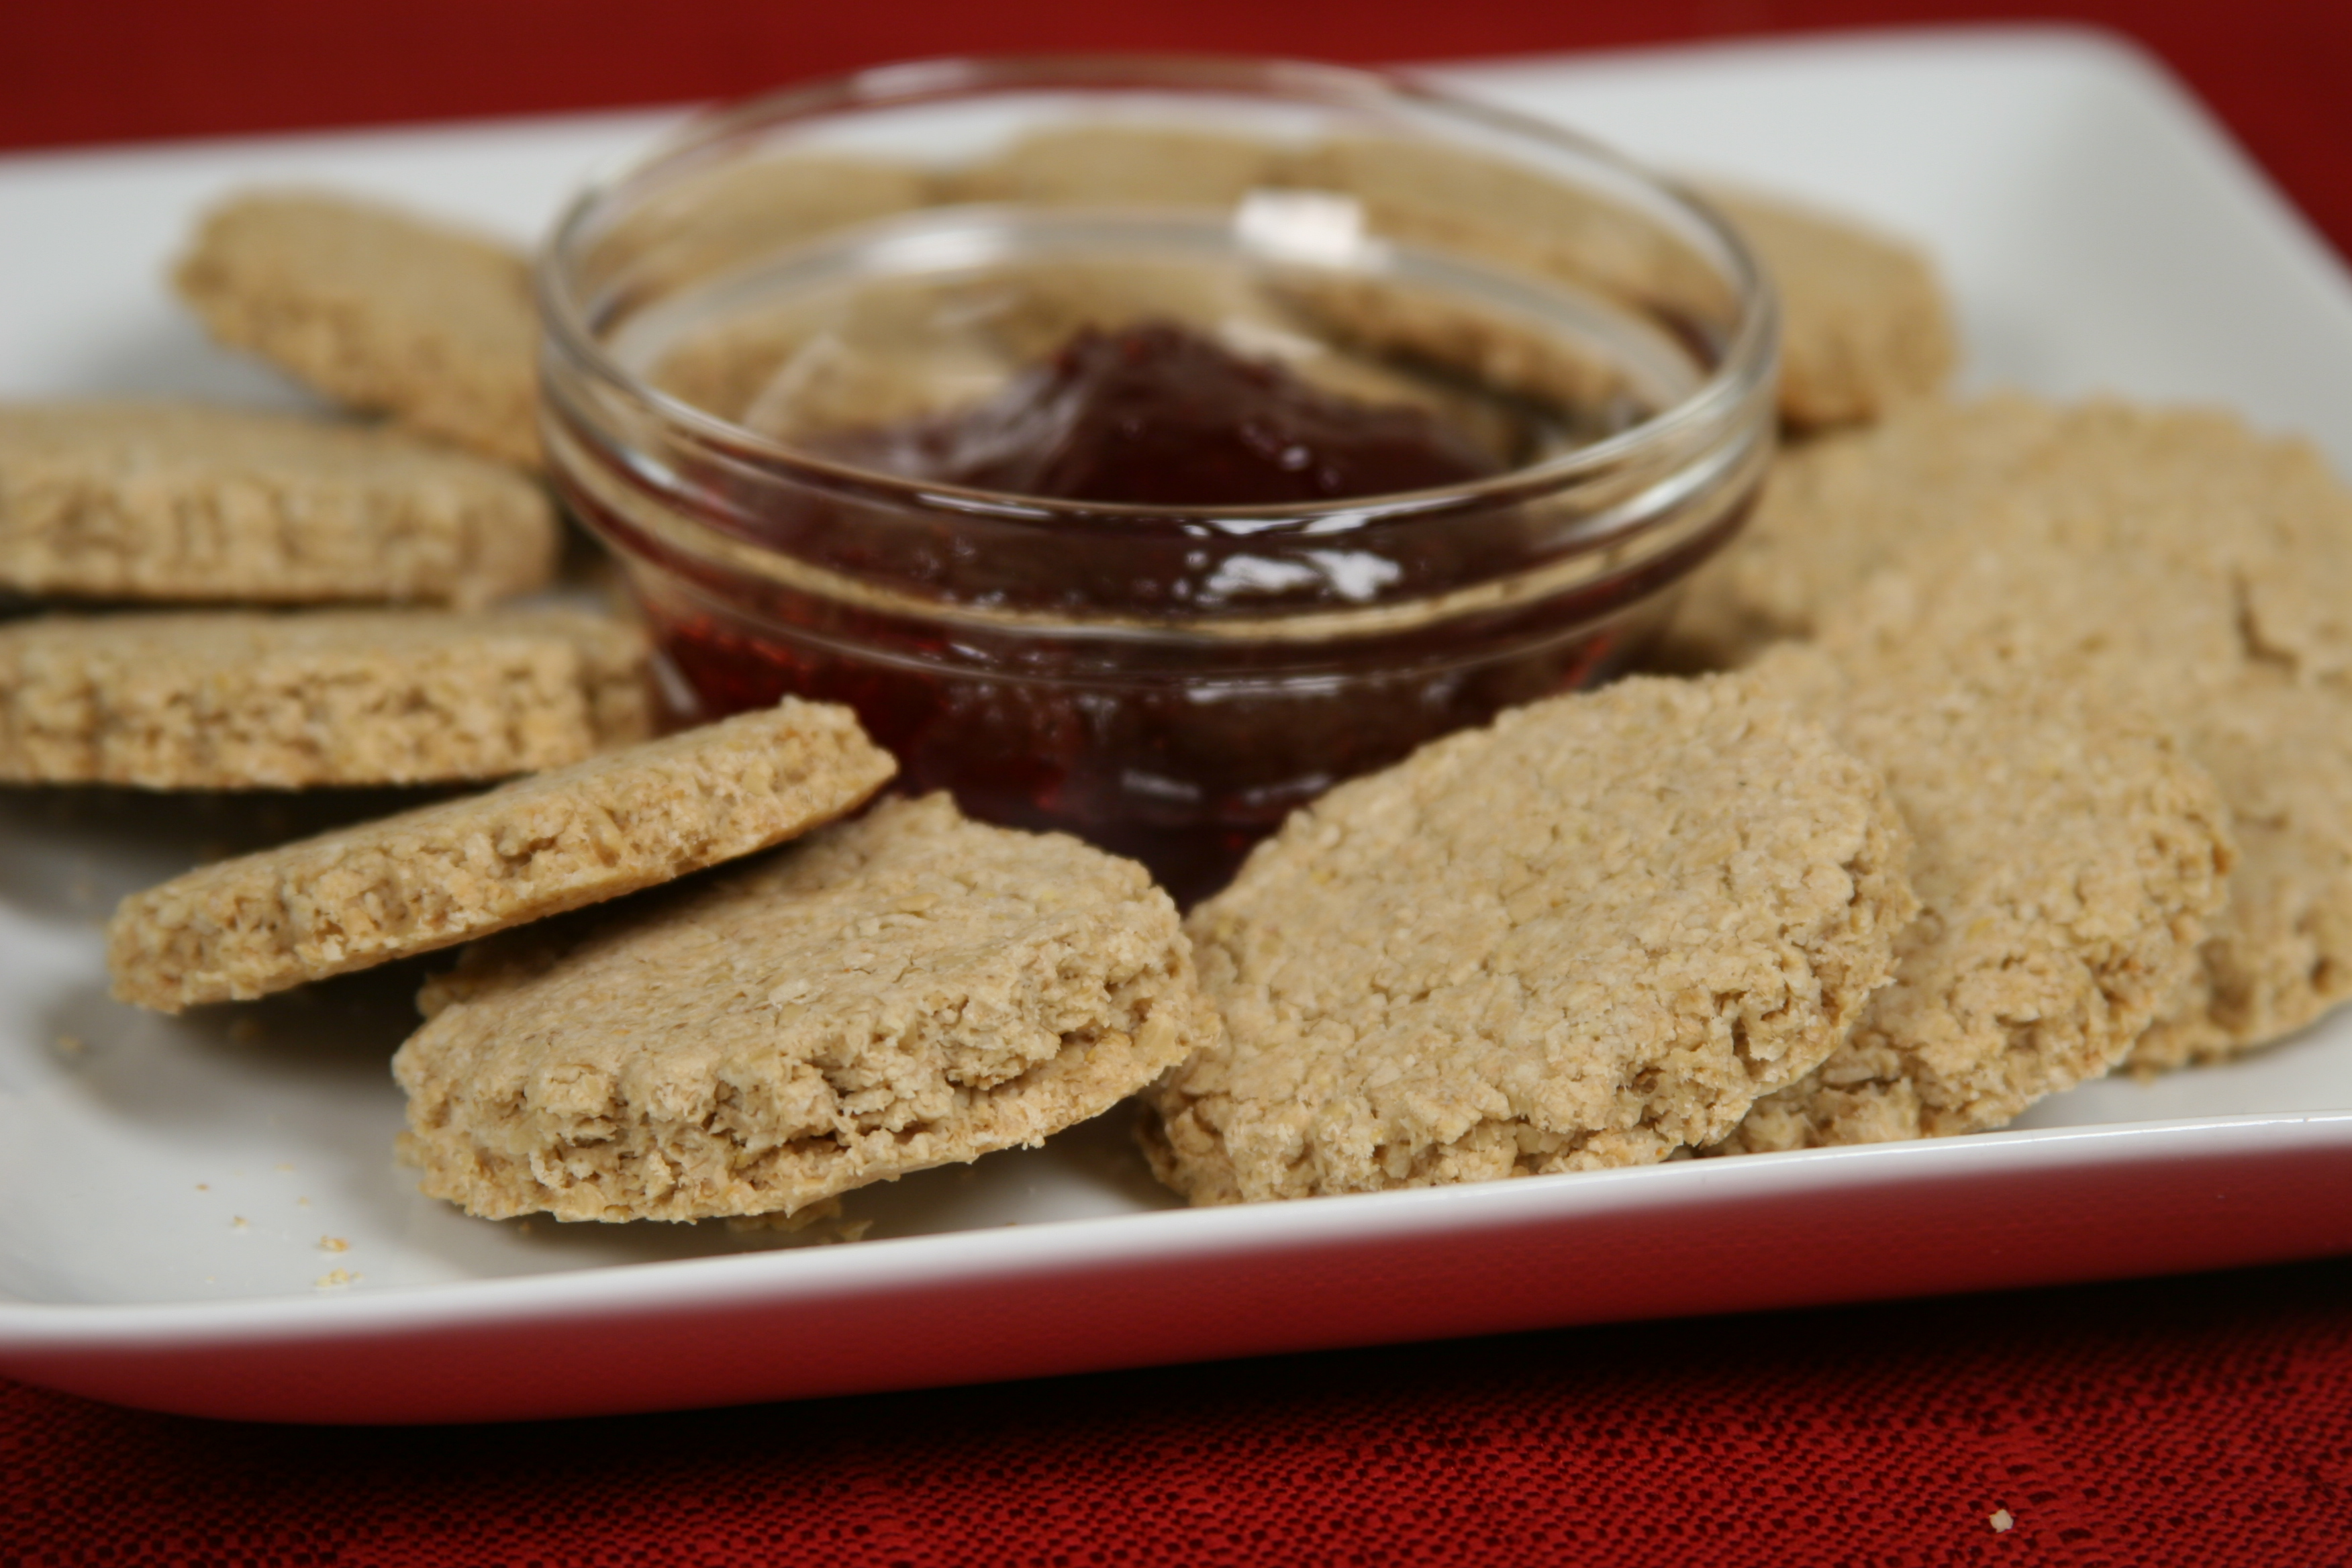 Scottish Oatcakes are a healthy alternative to crackers for hors d'oeuvres.